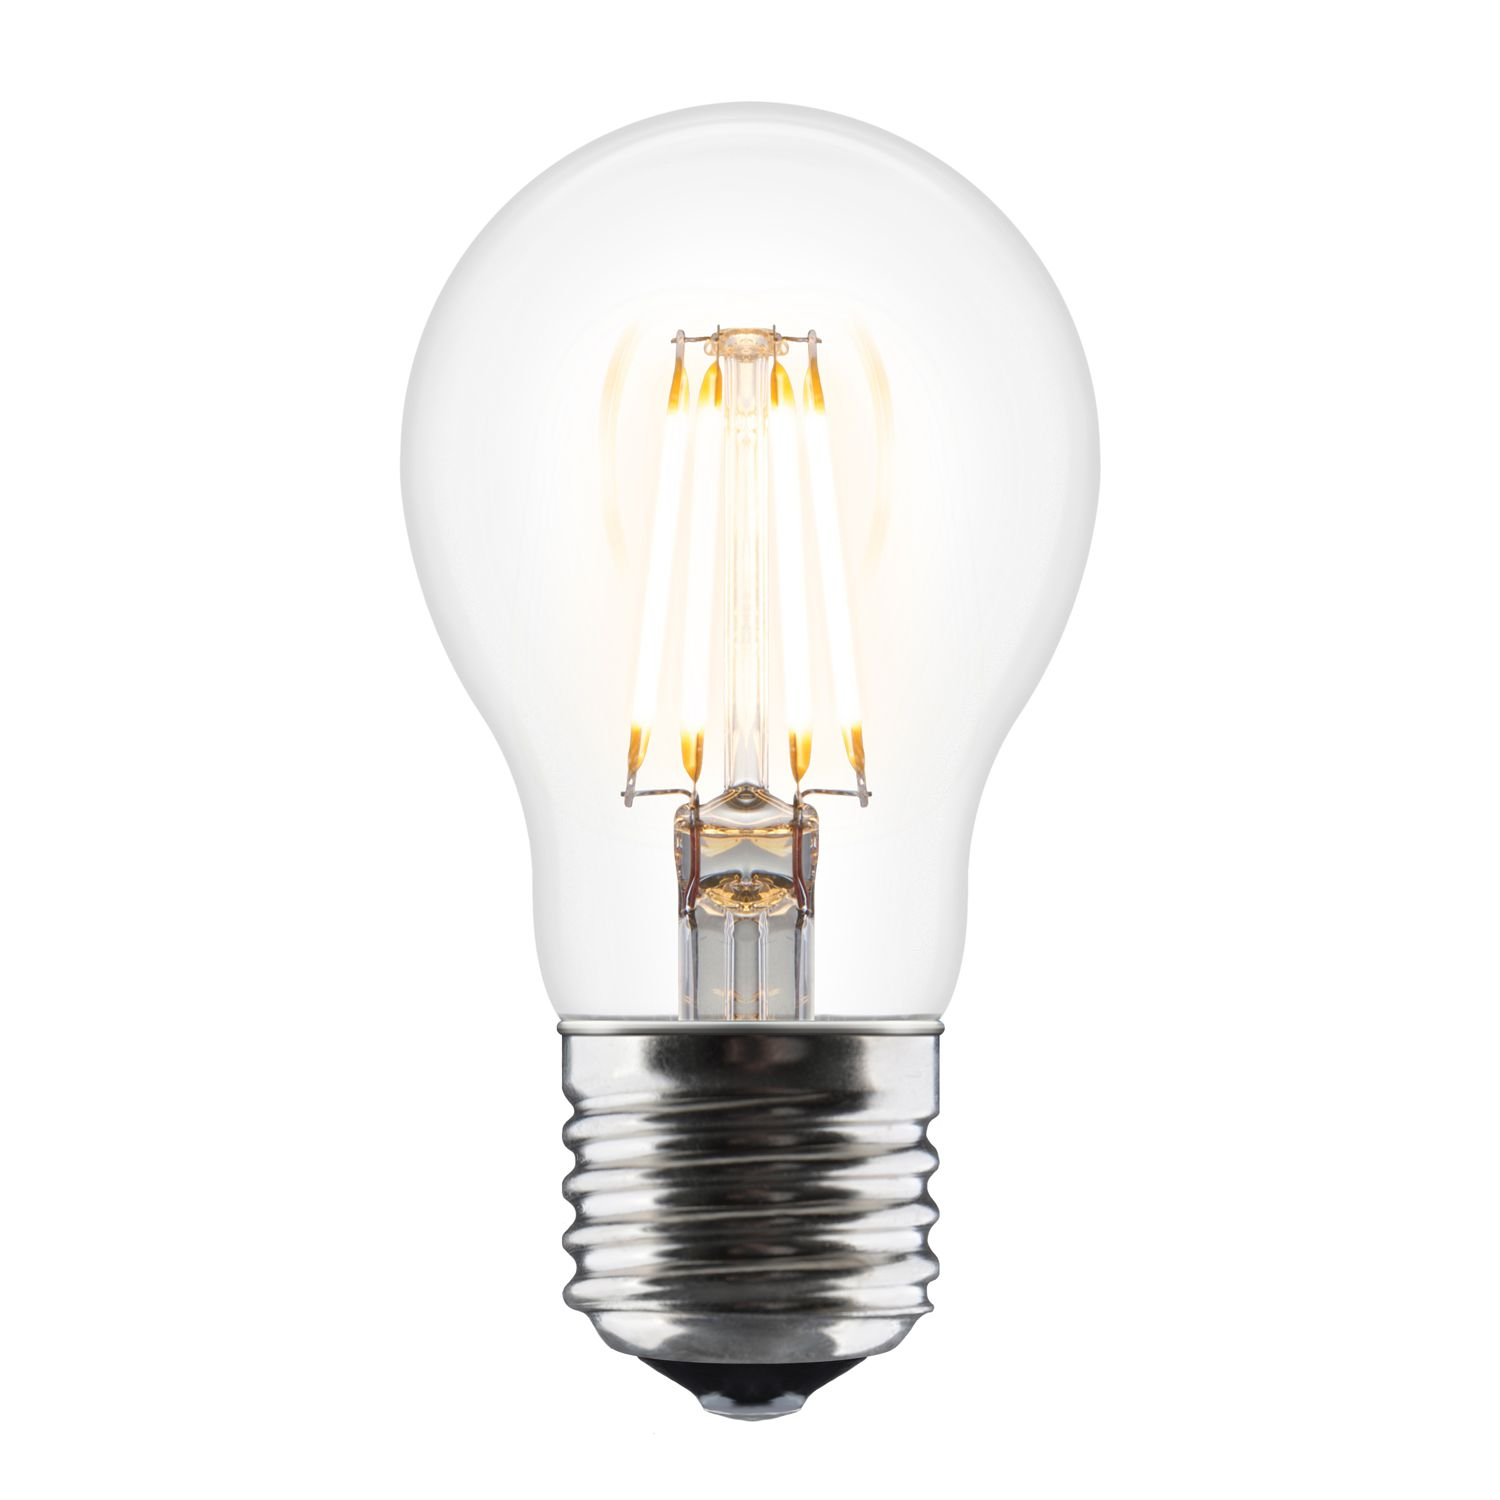 Lampadina LED Idea, UMAGE